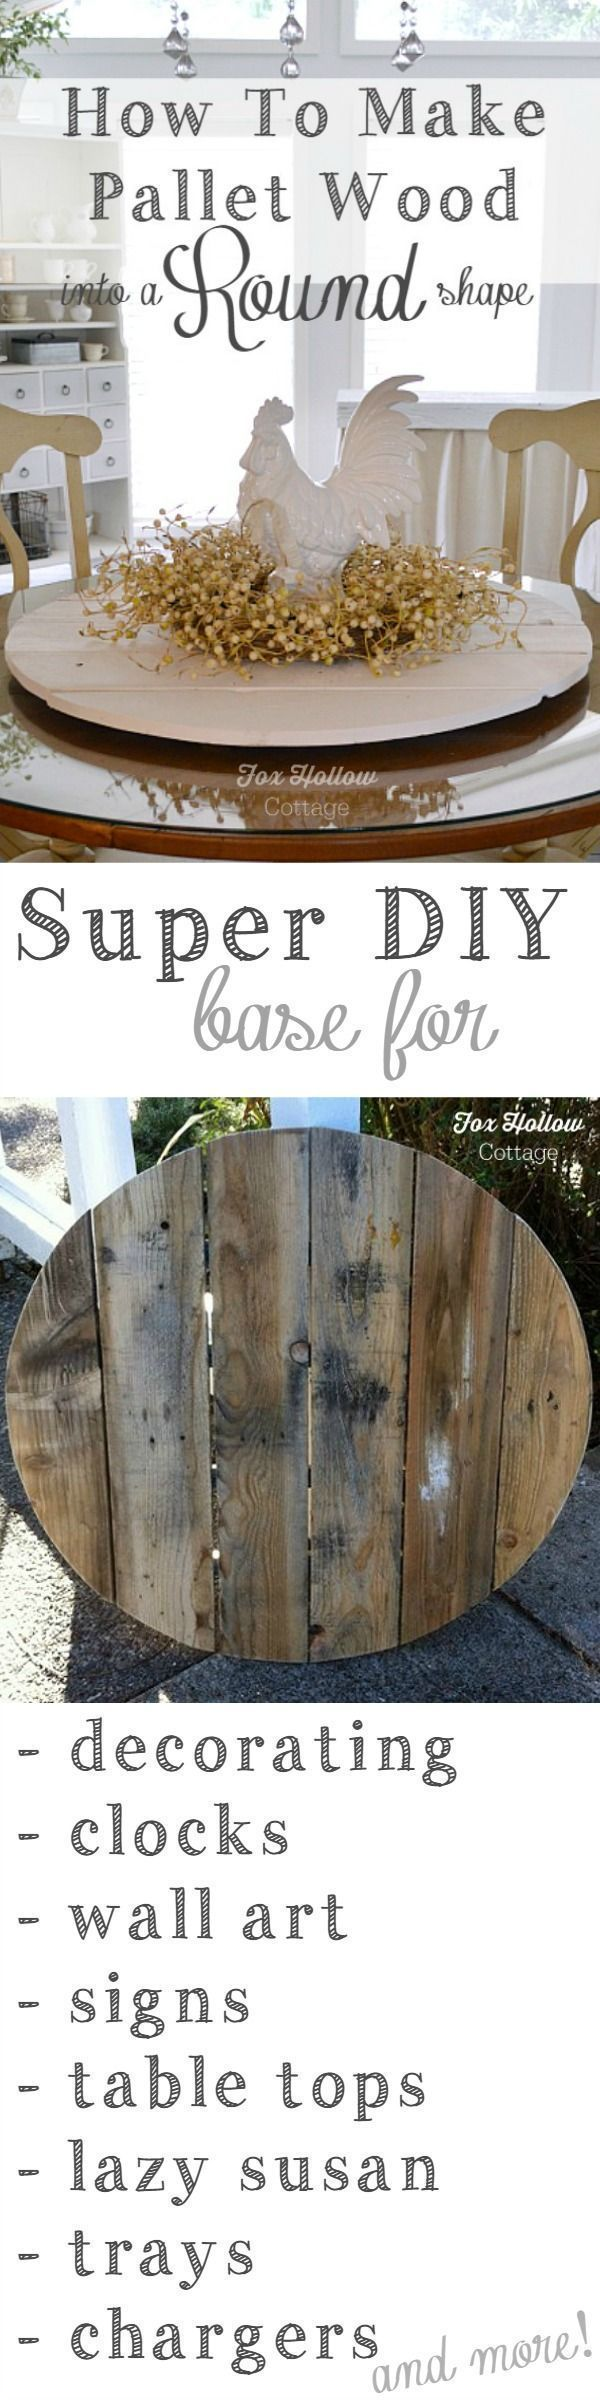 Howto make pallet wood into a round circle shape simple beginner